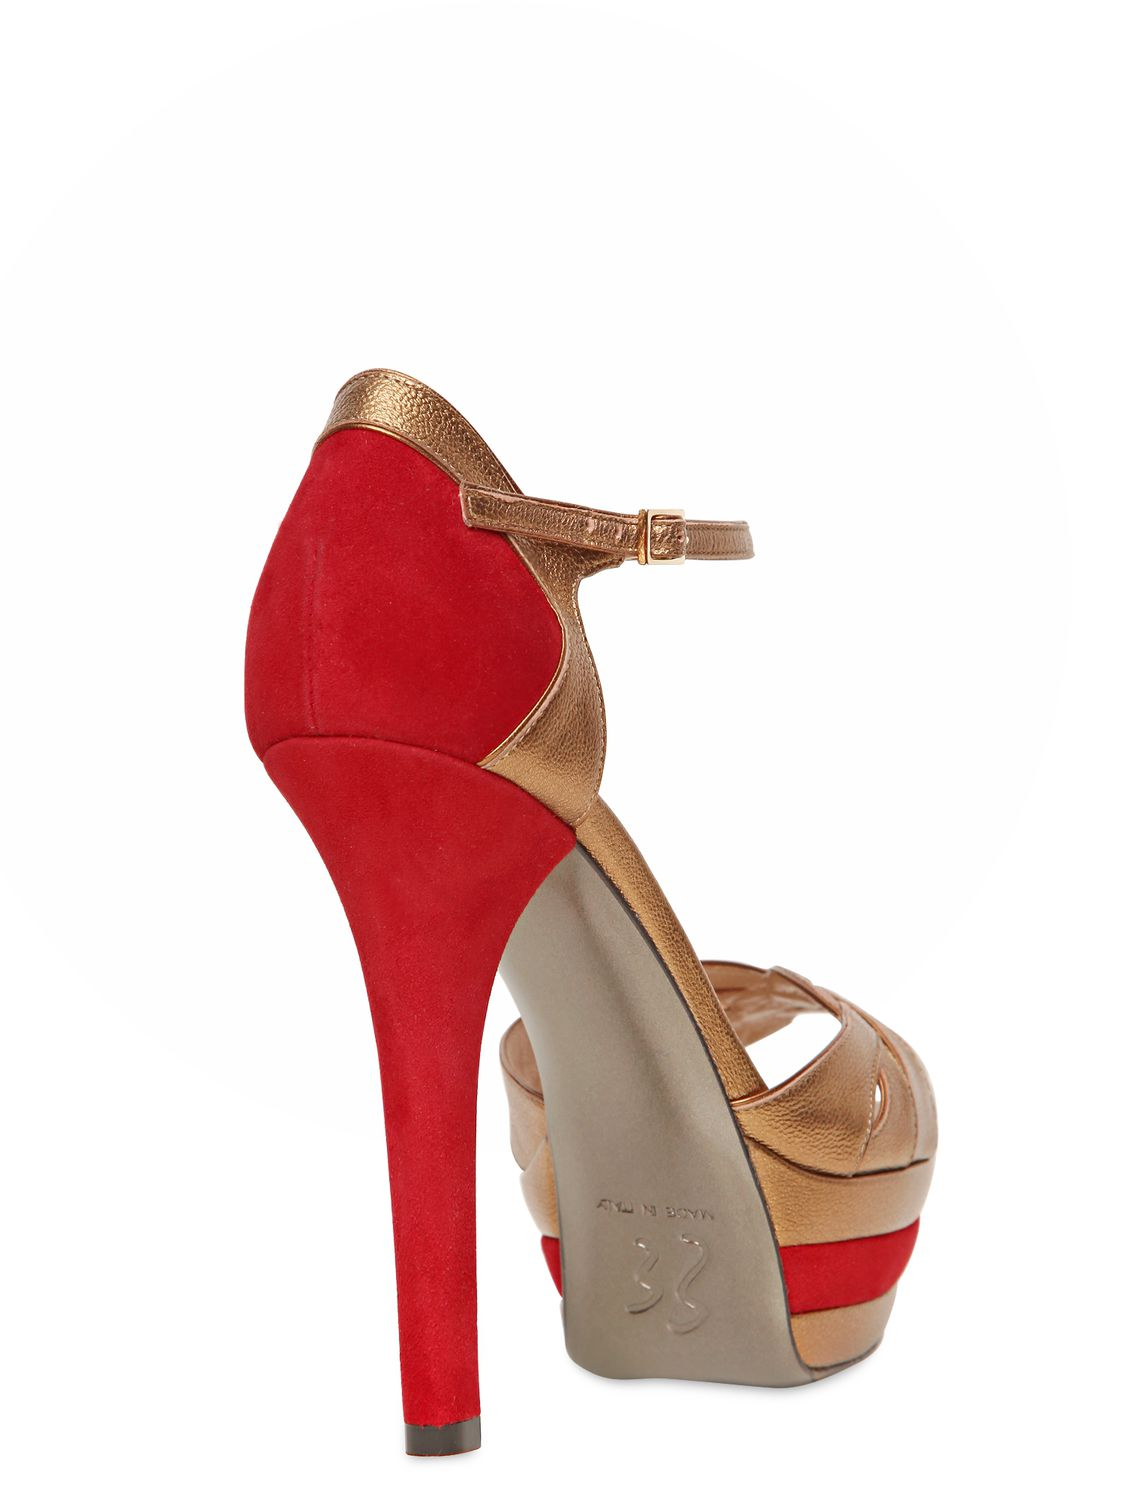 Ernesto Esposito 130mm Suede And Leather Pumps In Red Lyst